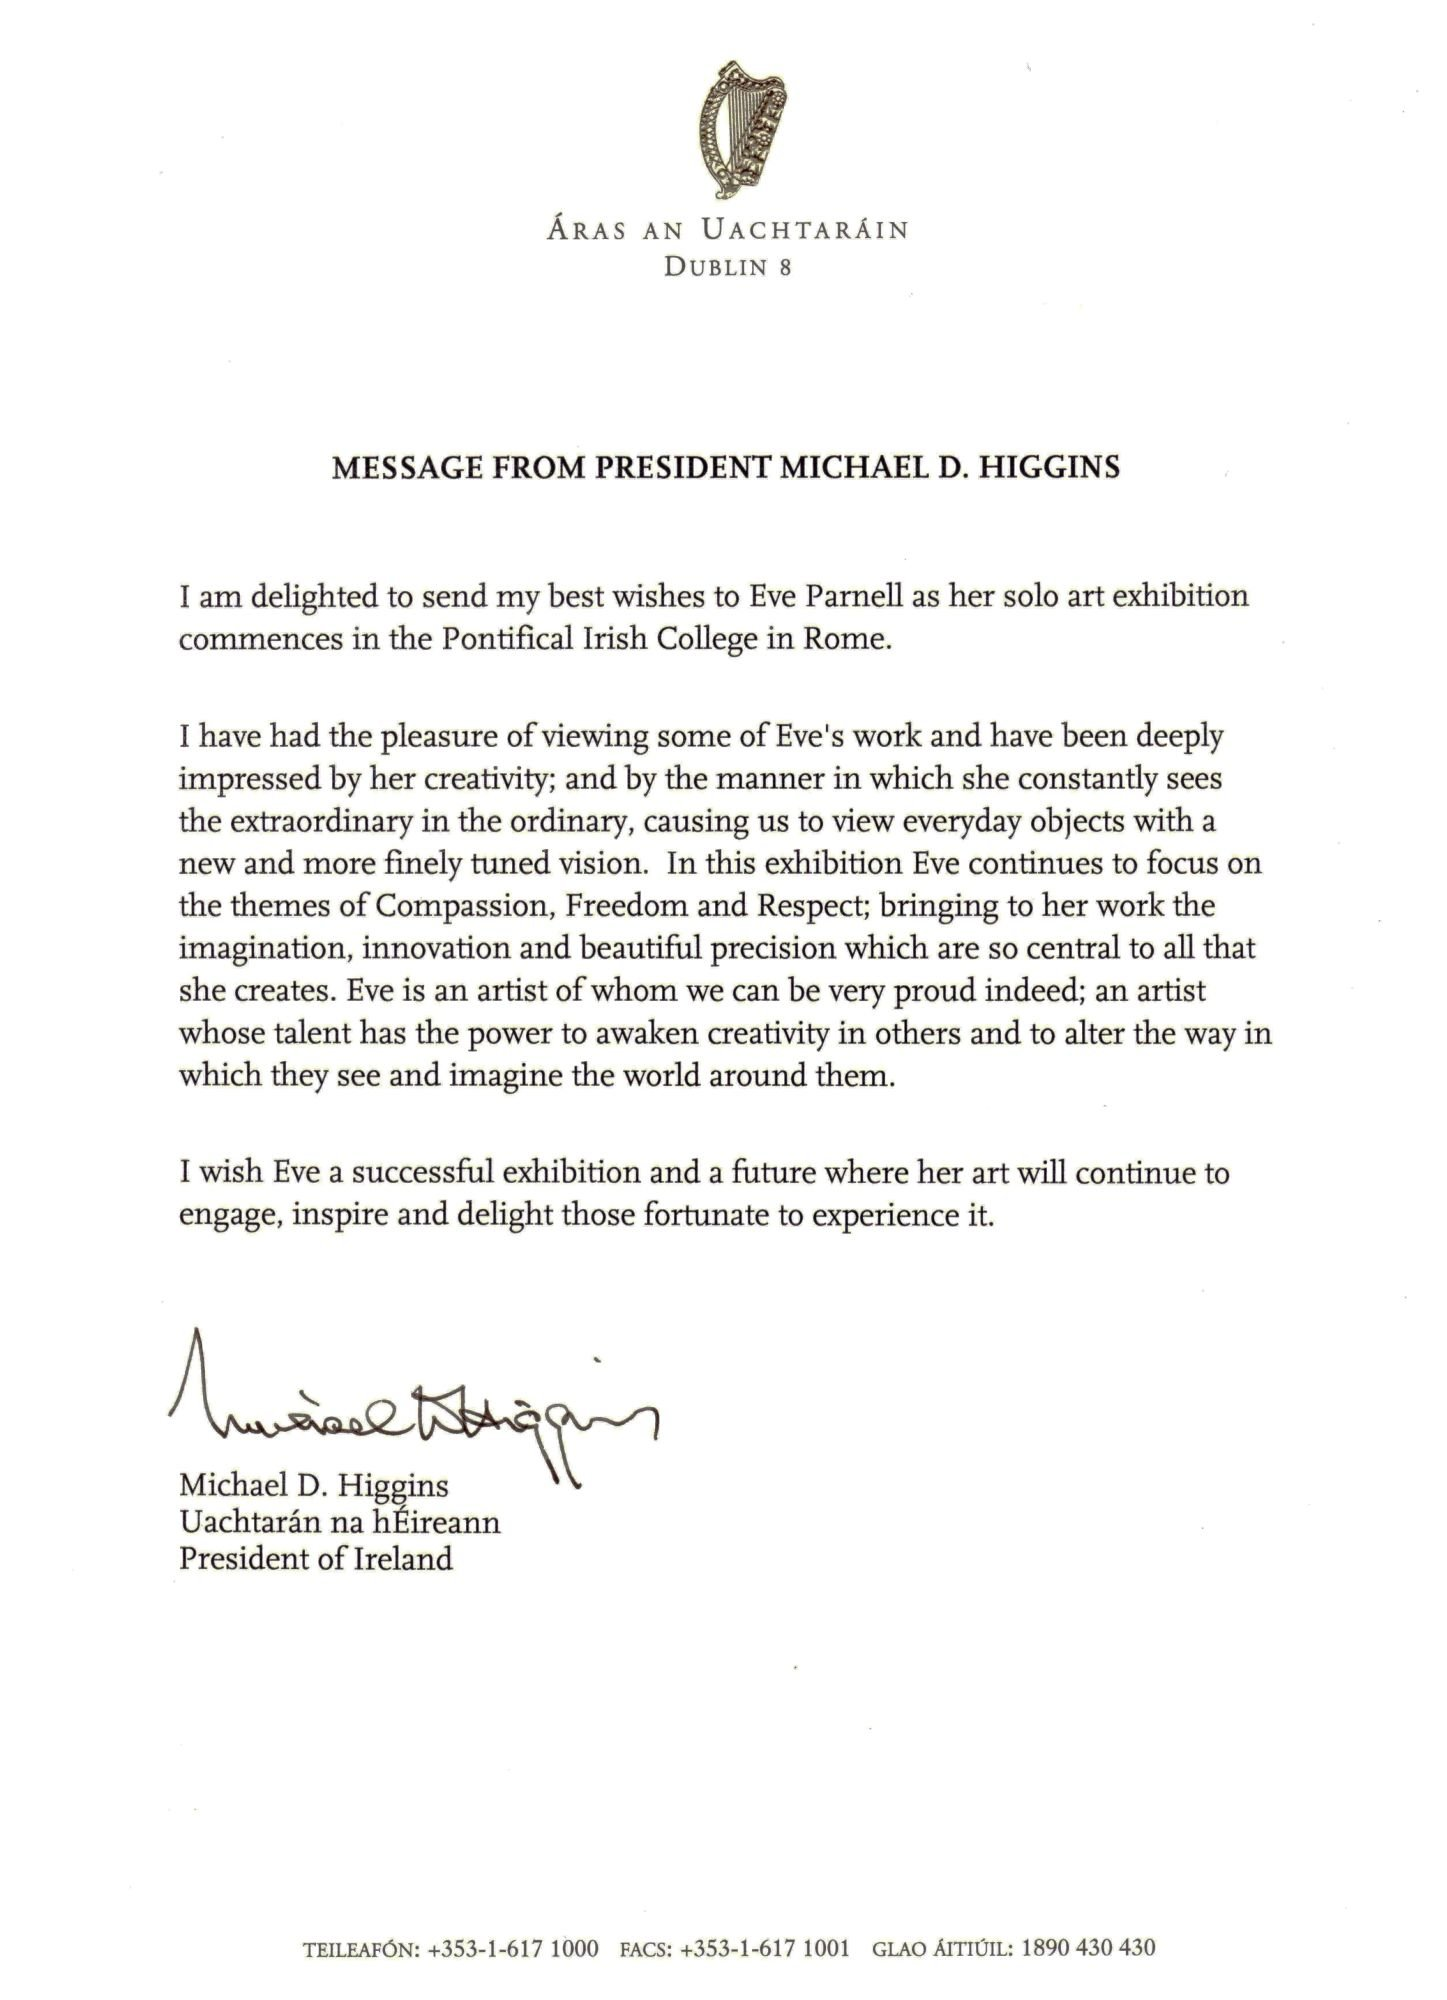 letter from his excellency the president of ireland michael d higgins